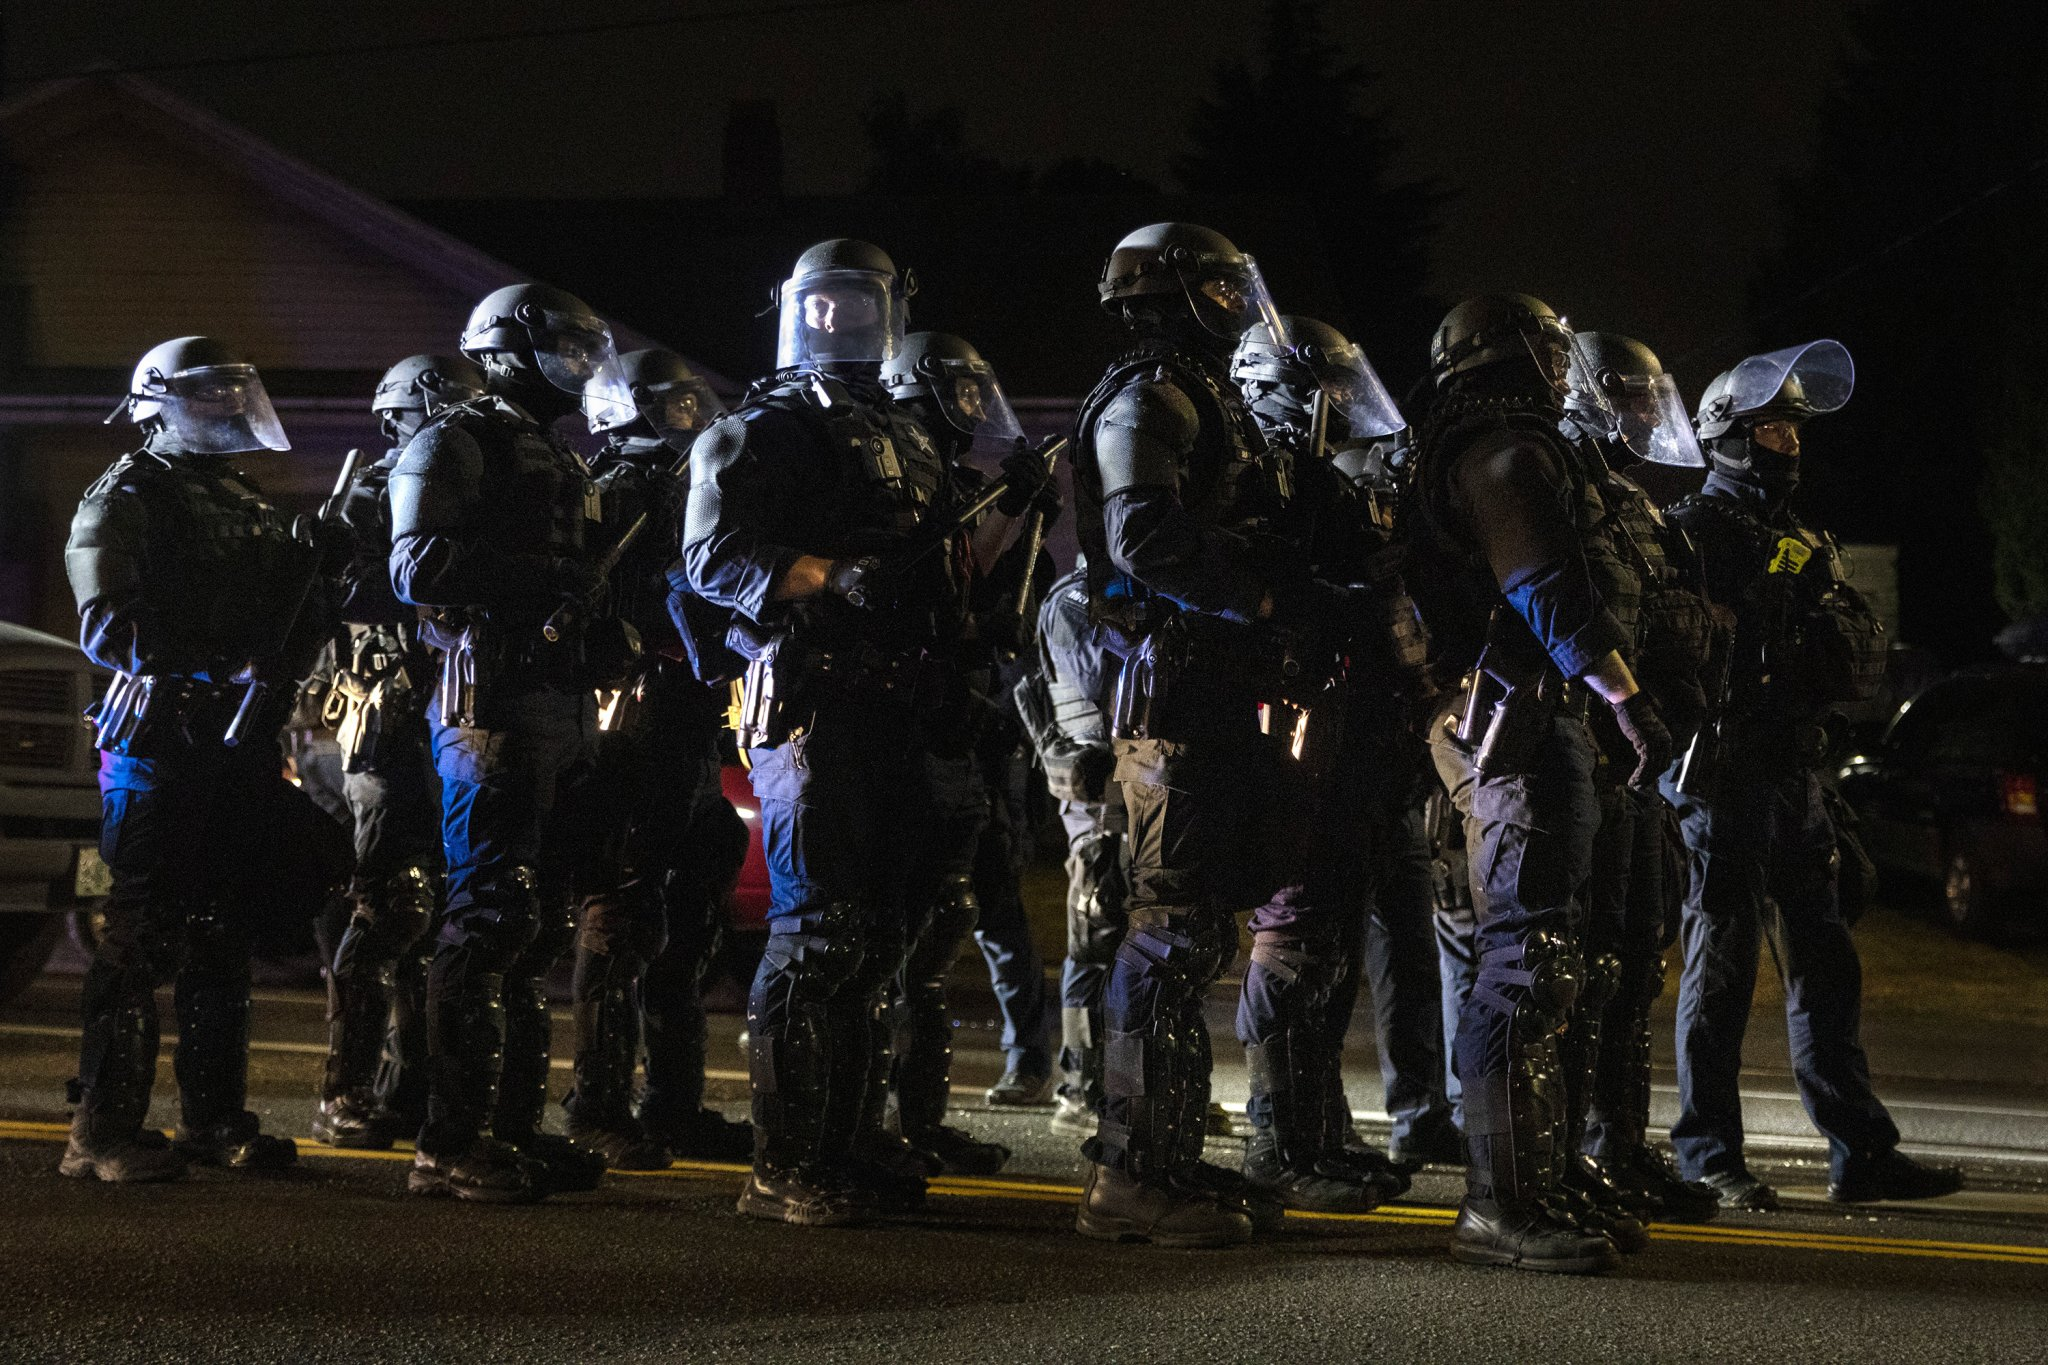 Portland police declare riot after protesters march on mayor's residence